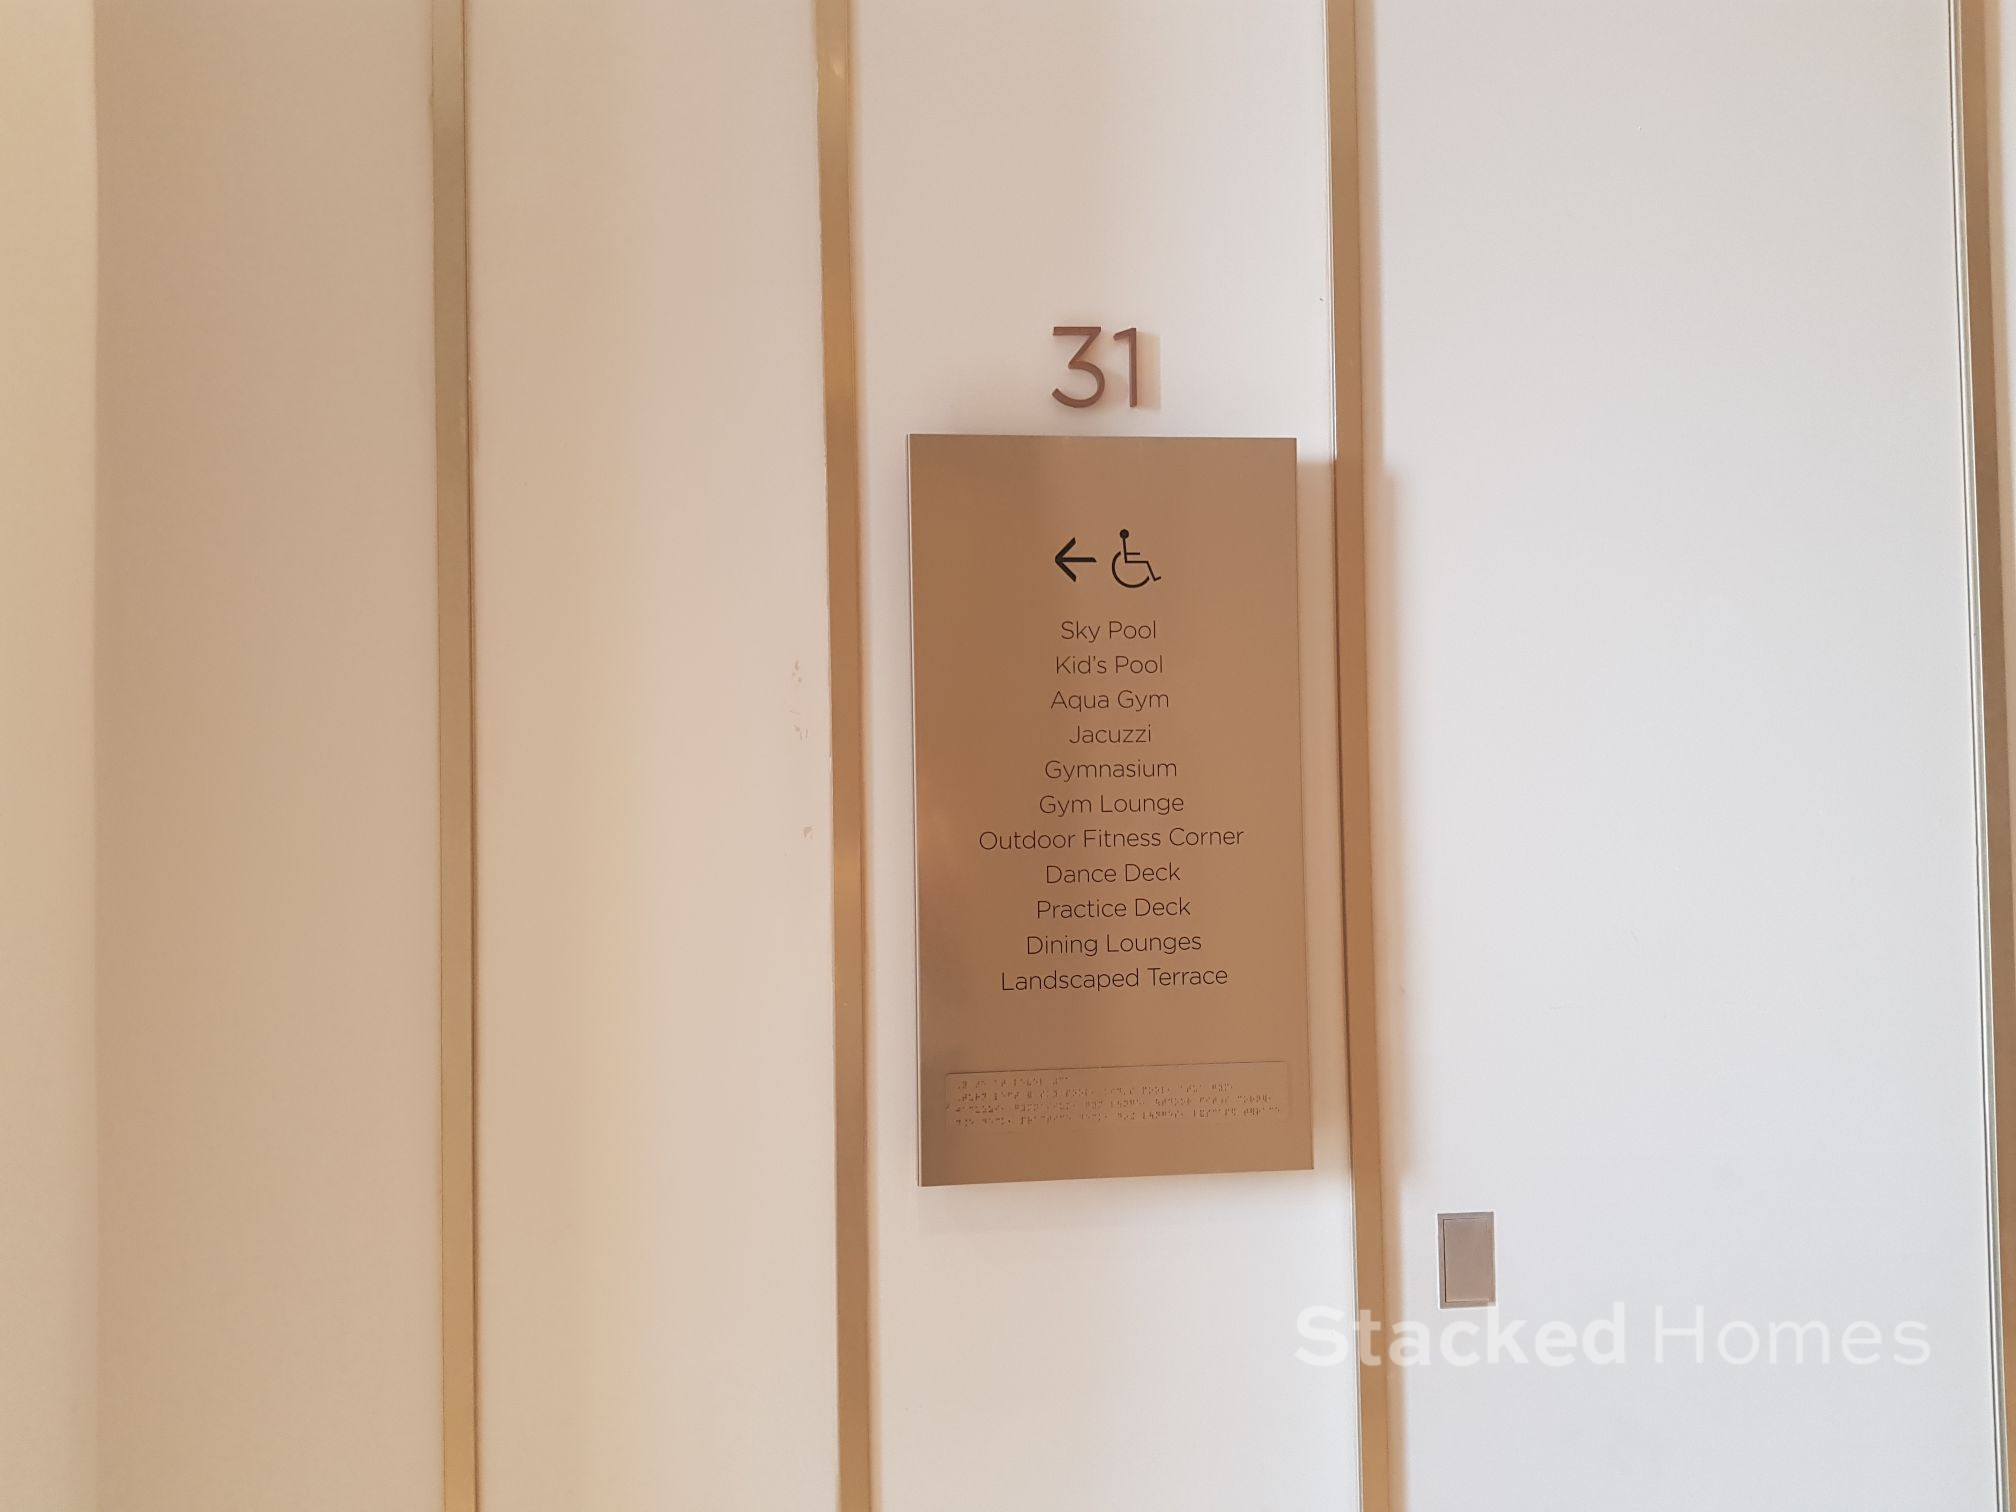 Duo Residences greeting sign